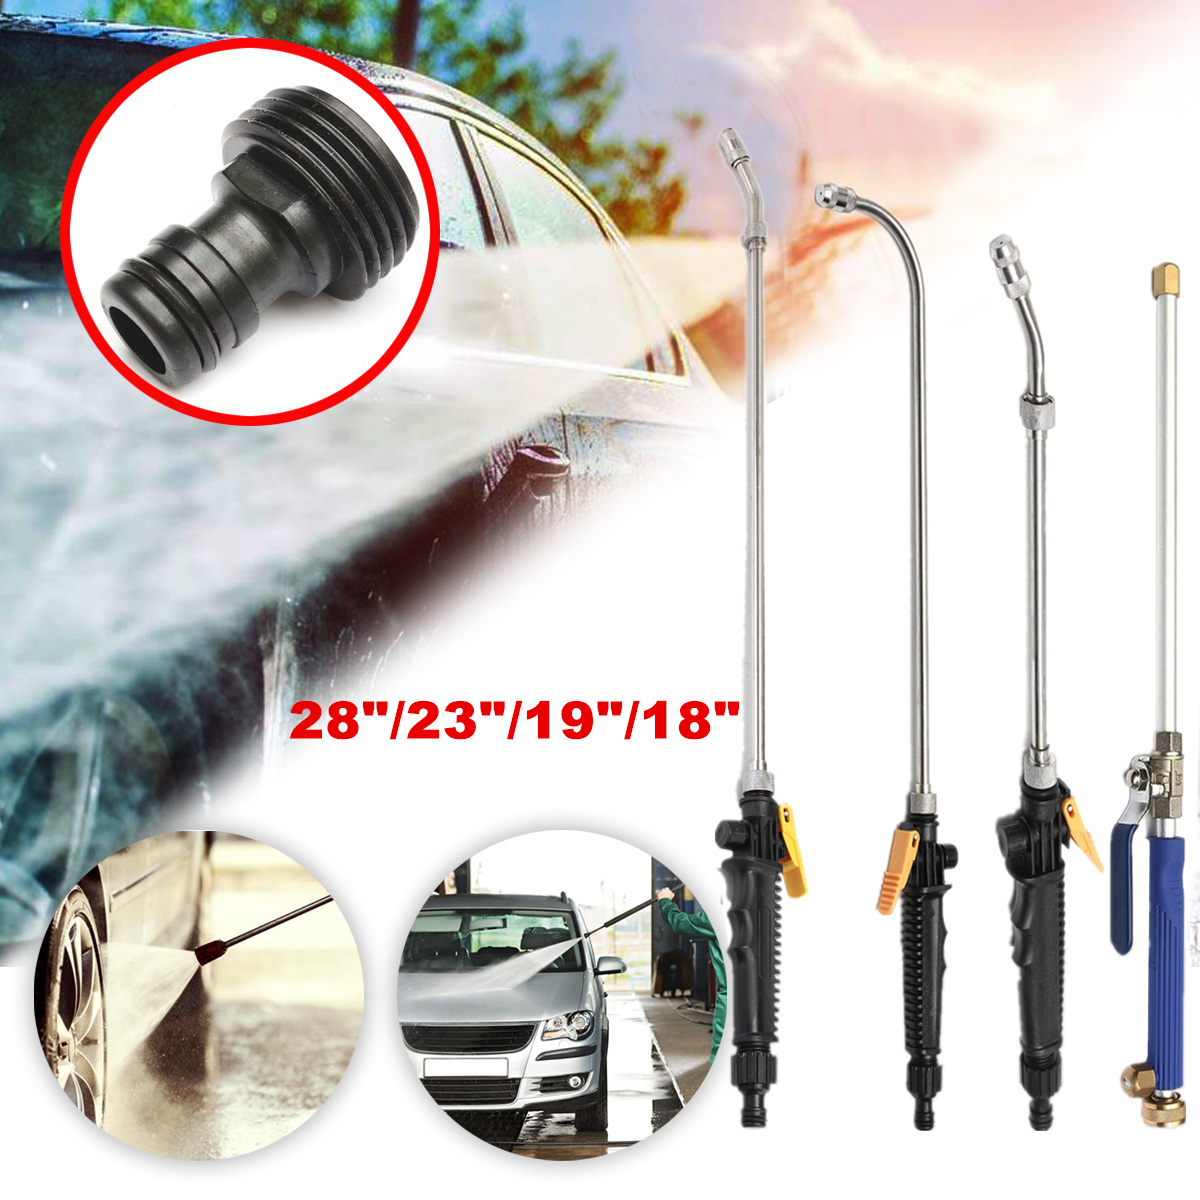 High Pressure Power Washer Spray Nozzle Water Gun Spay Hose Wand Attachment Garden Car Washing Cleaning Tool